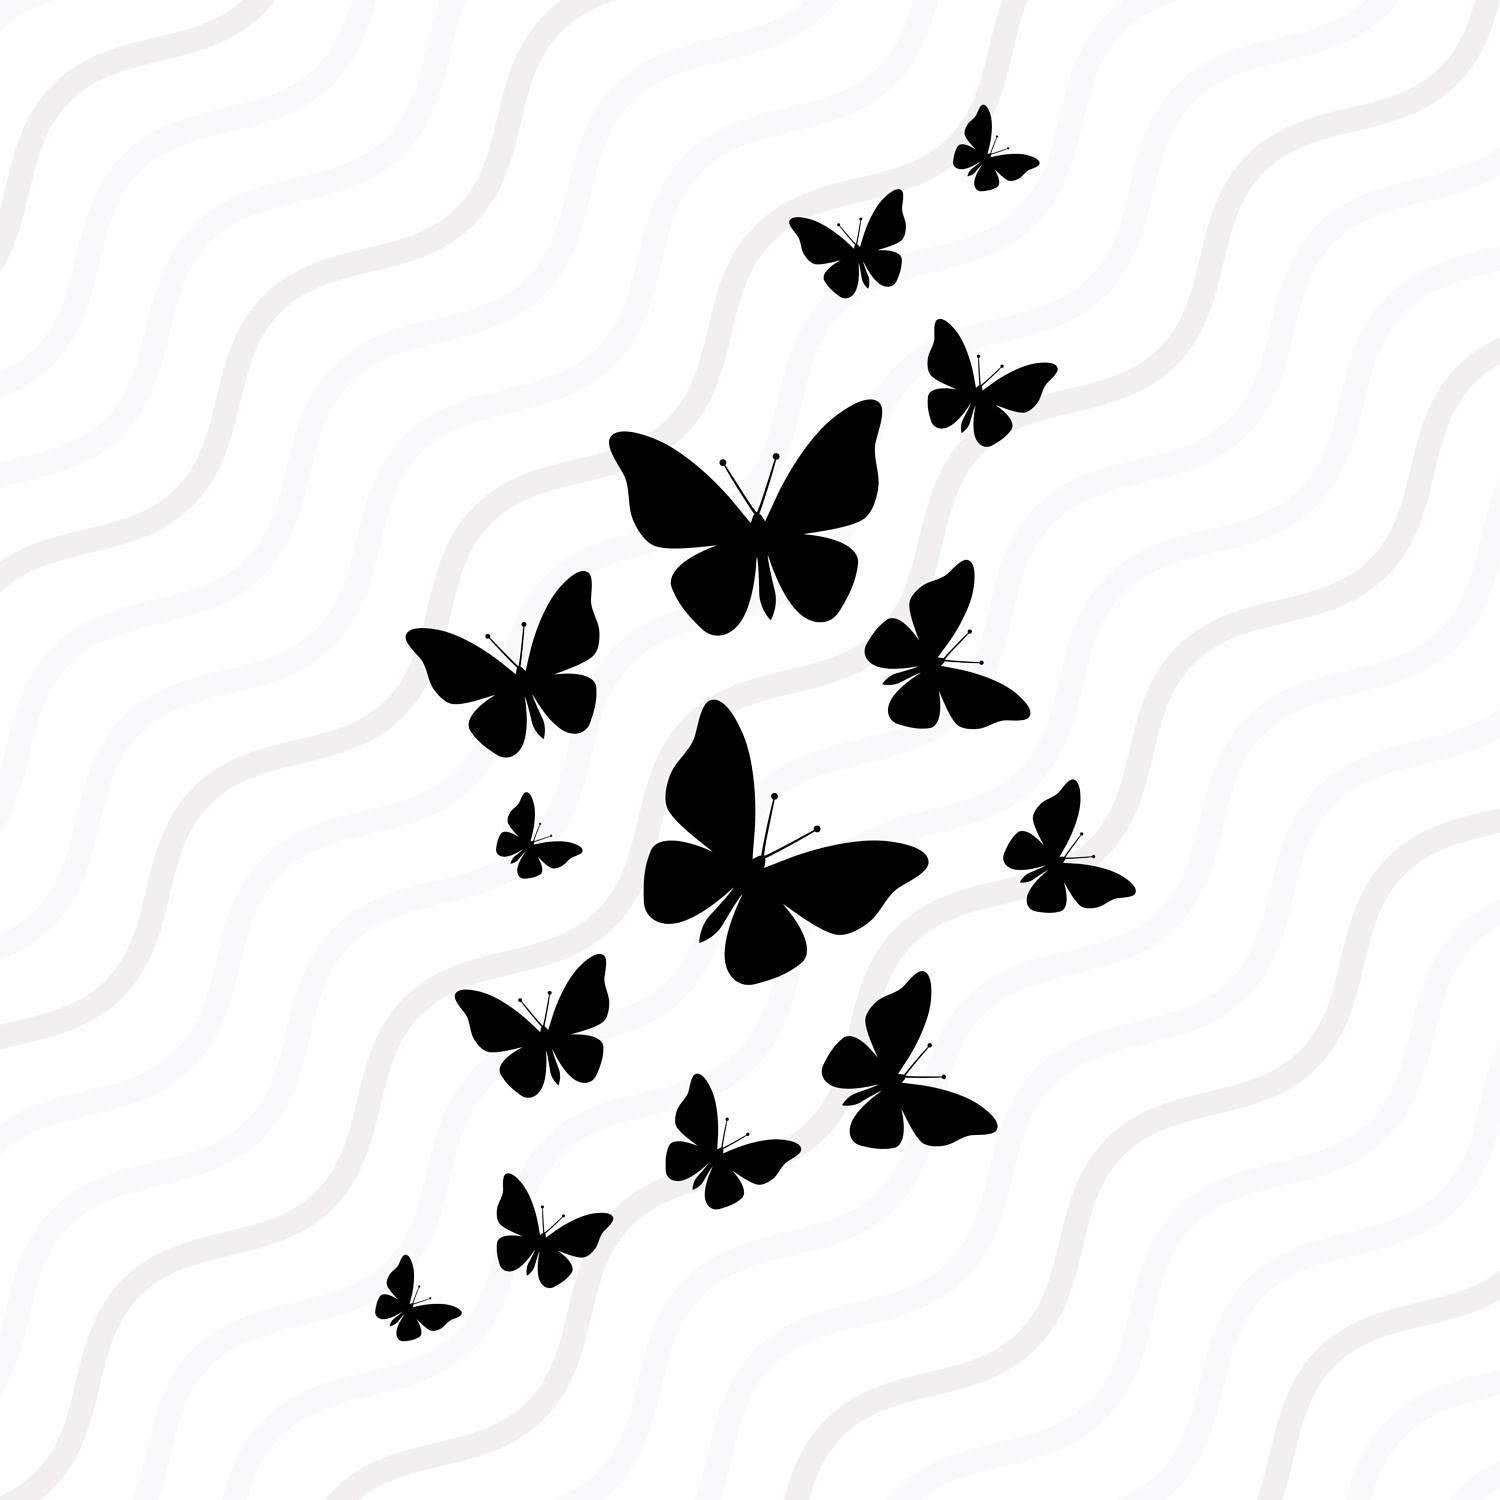 1500x1500 Fluttering Butterflies Svg, Butterfly Svg Cut Table Design,svg,dxf